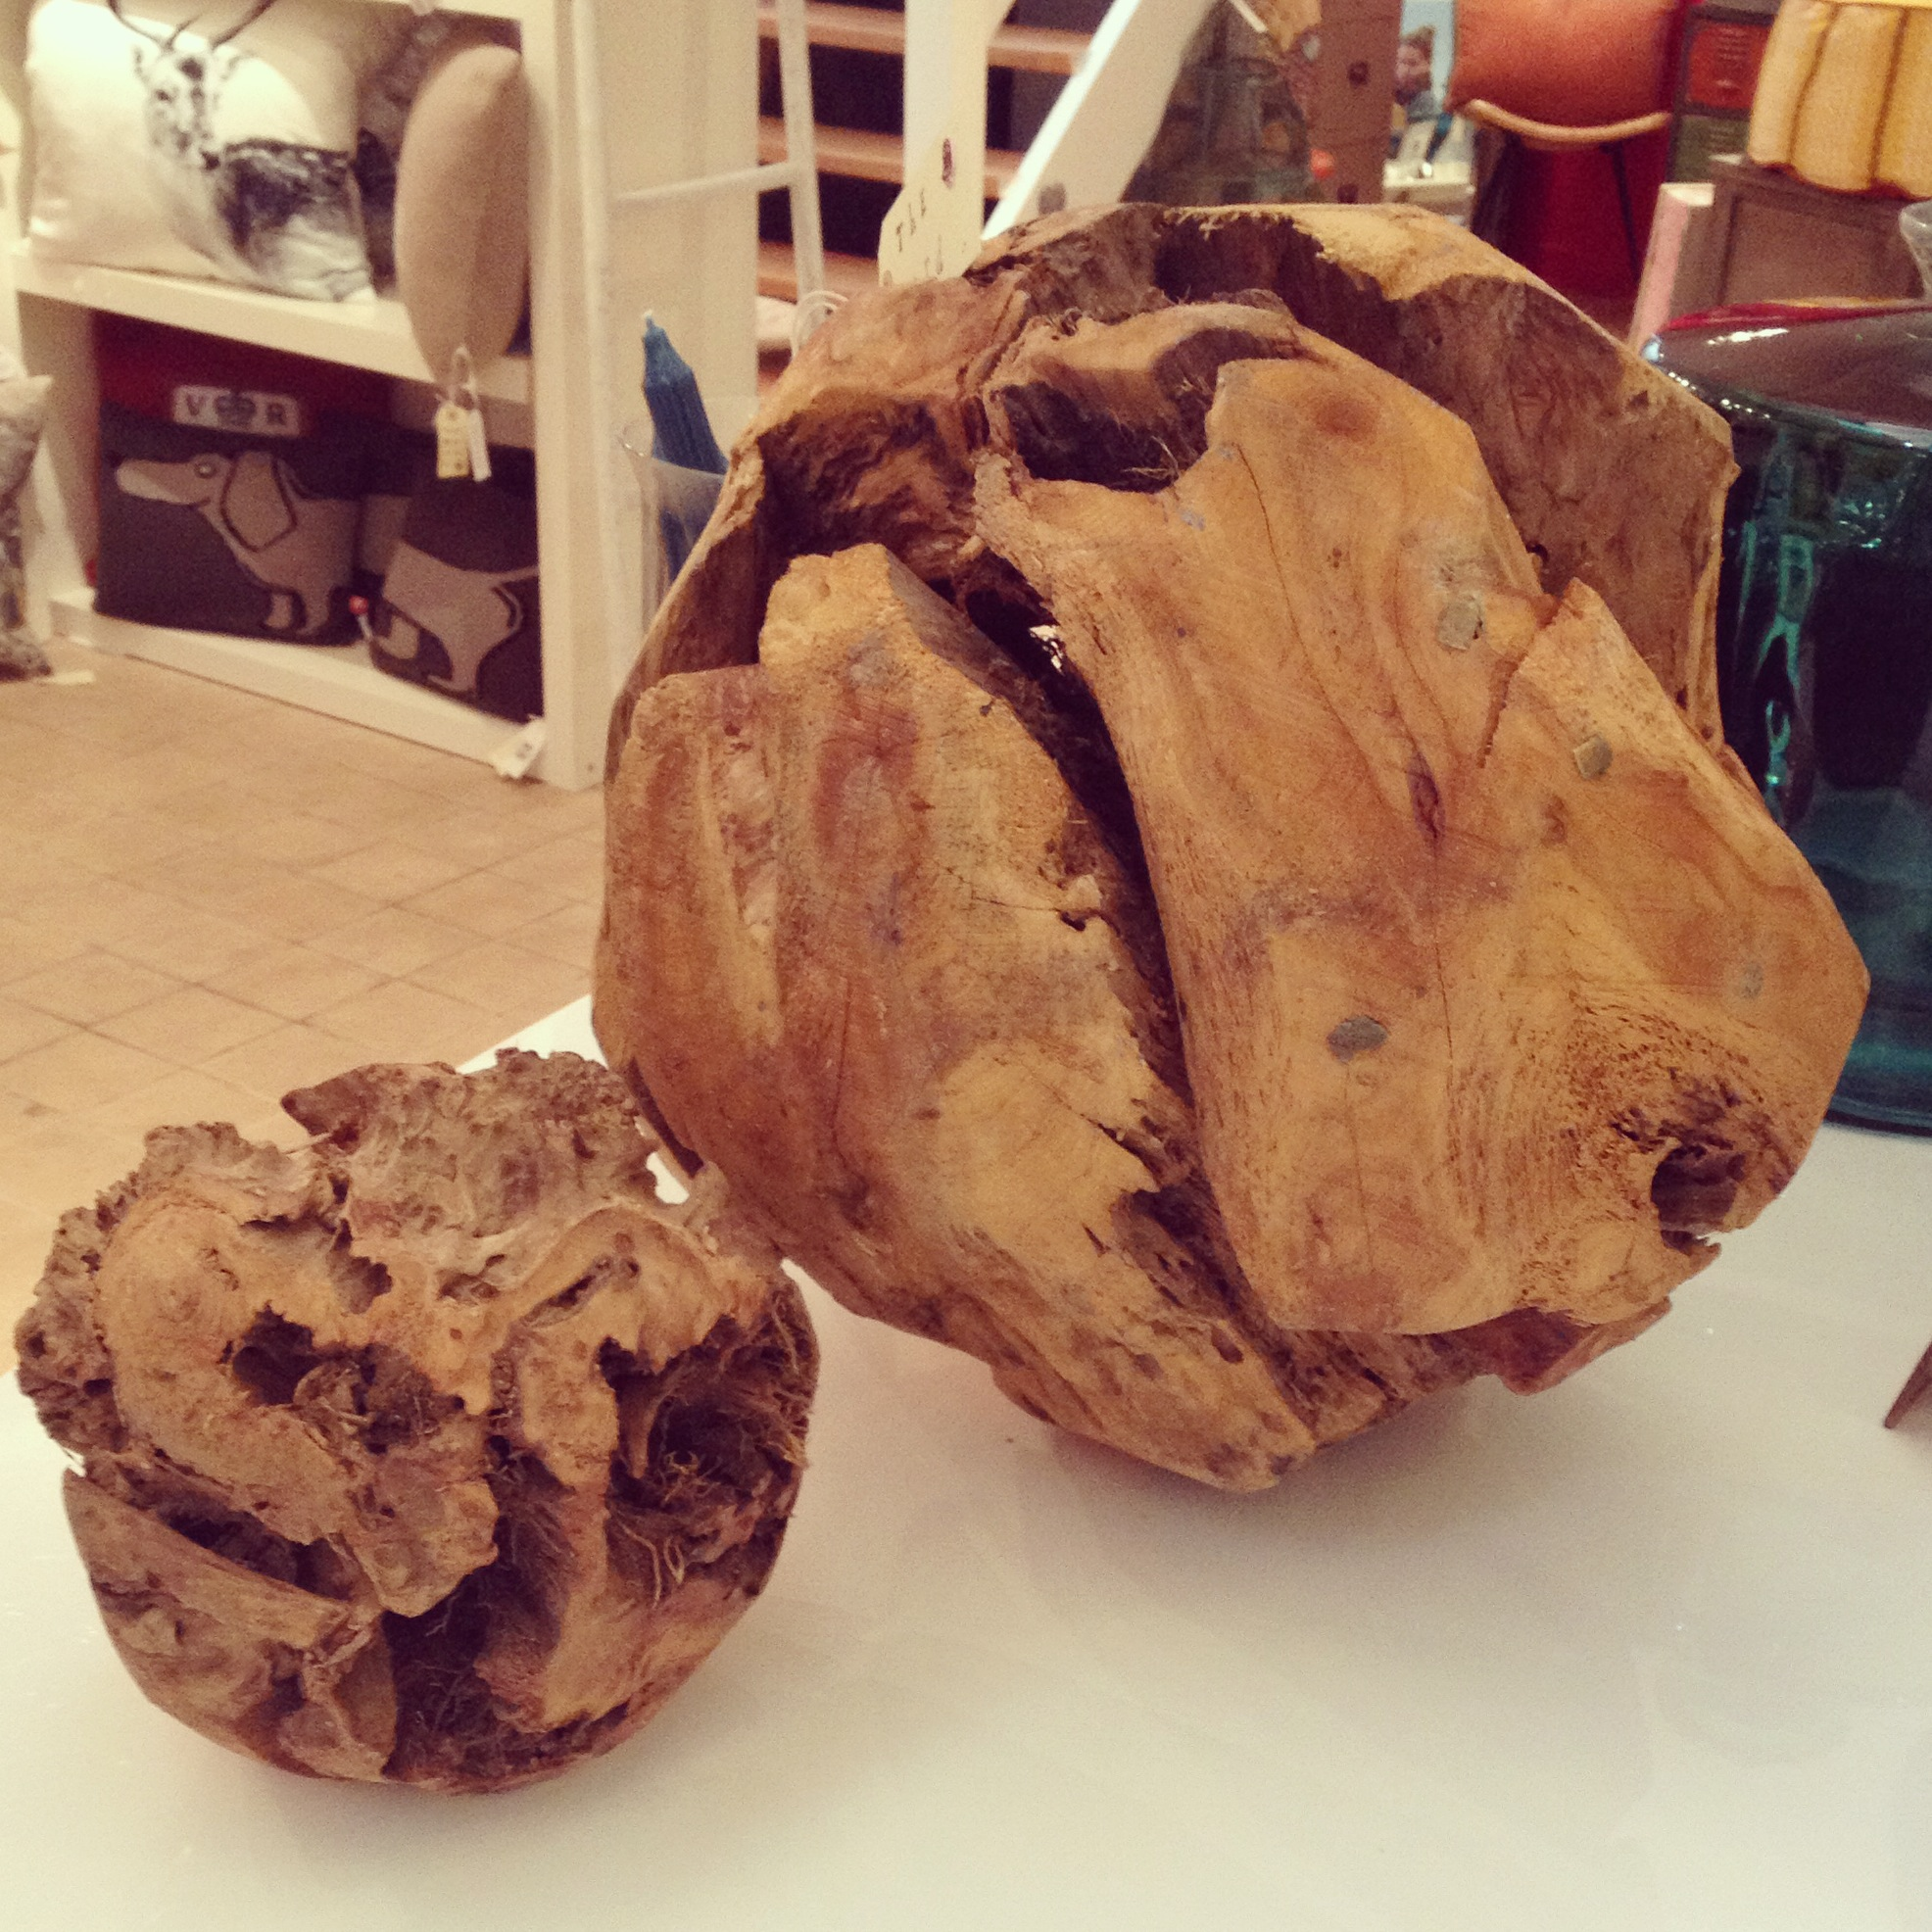 Large and small decorative balls made of tree roots